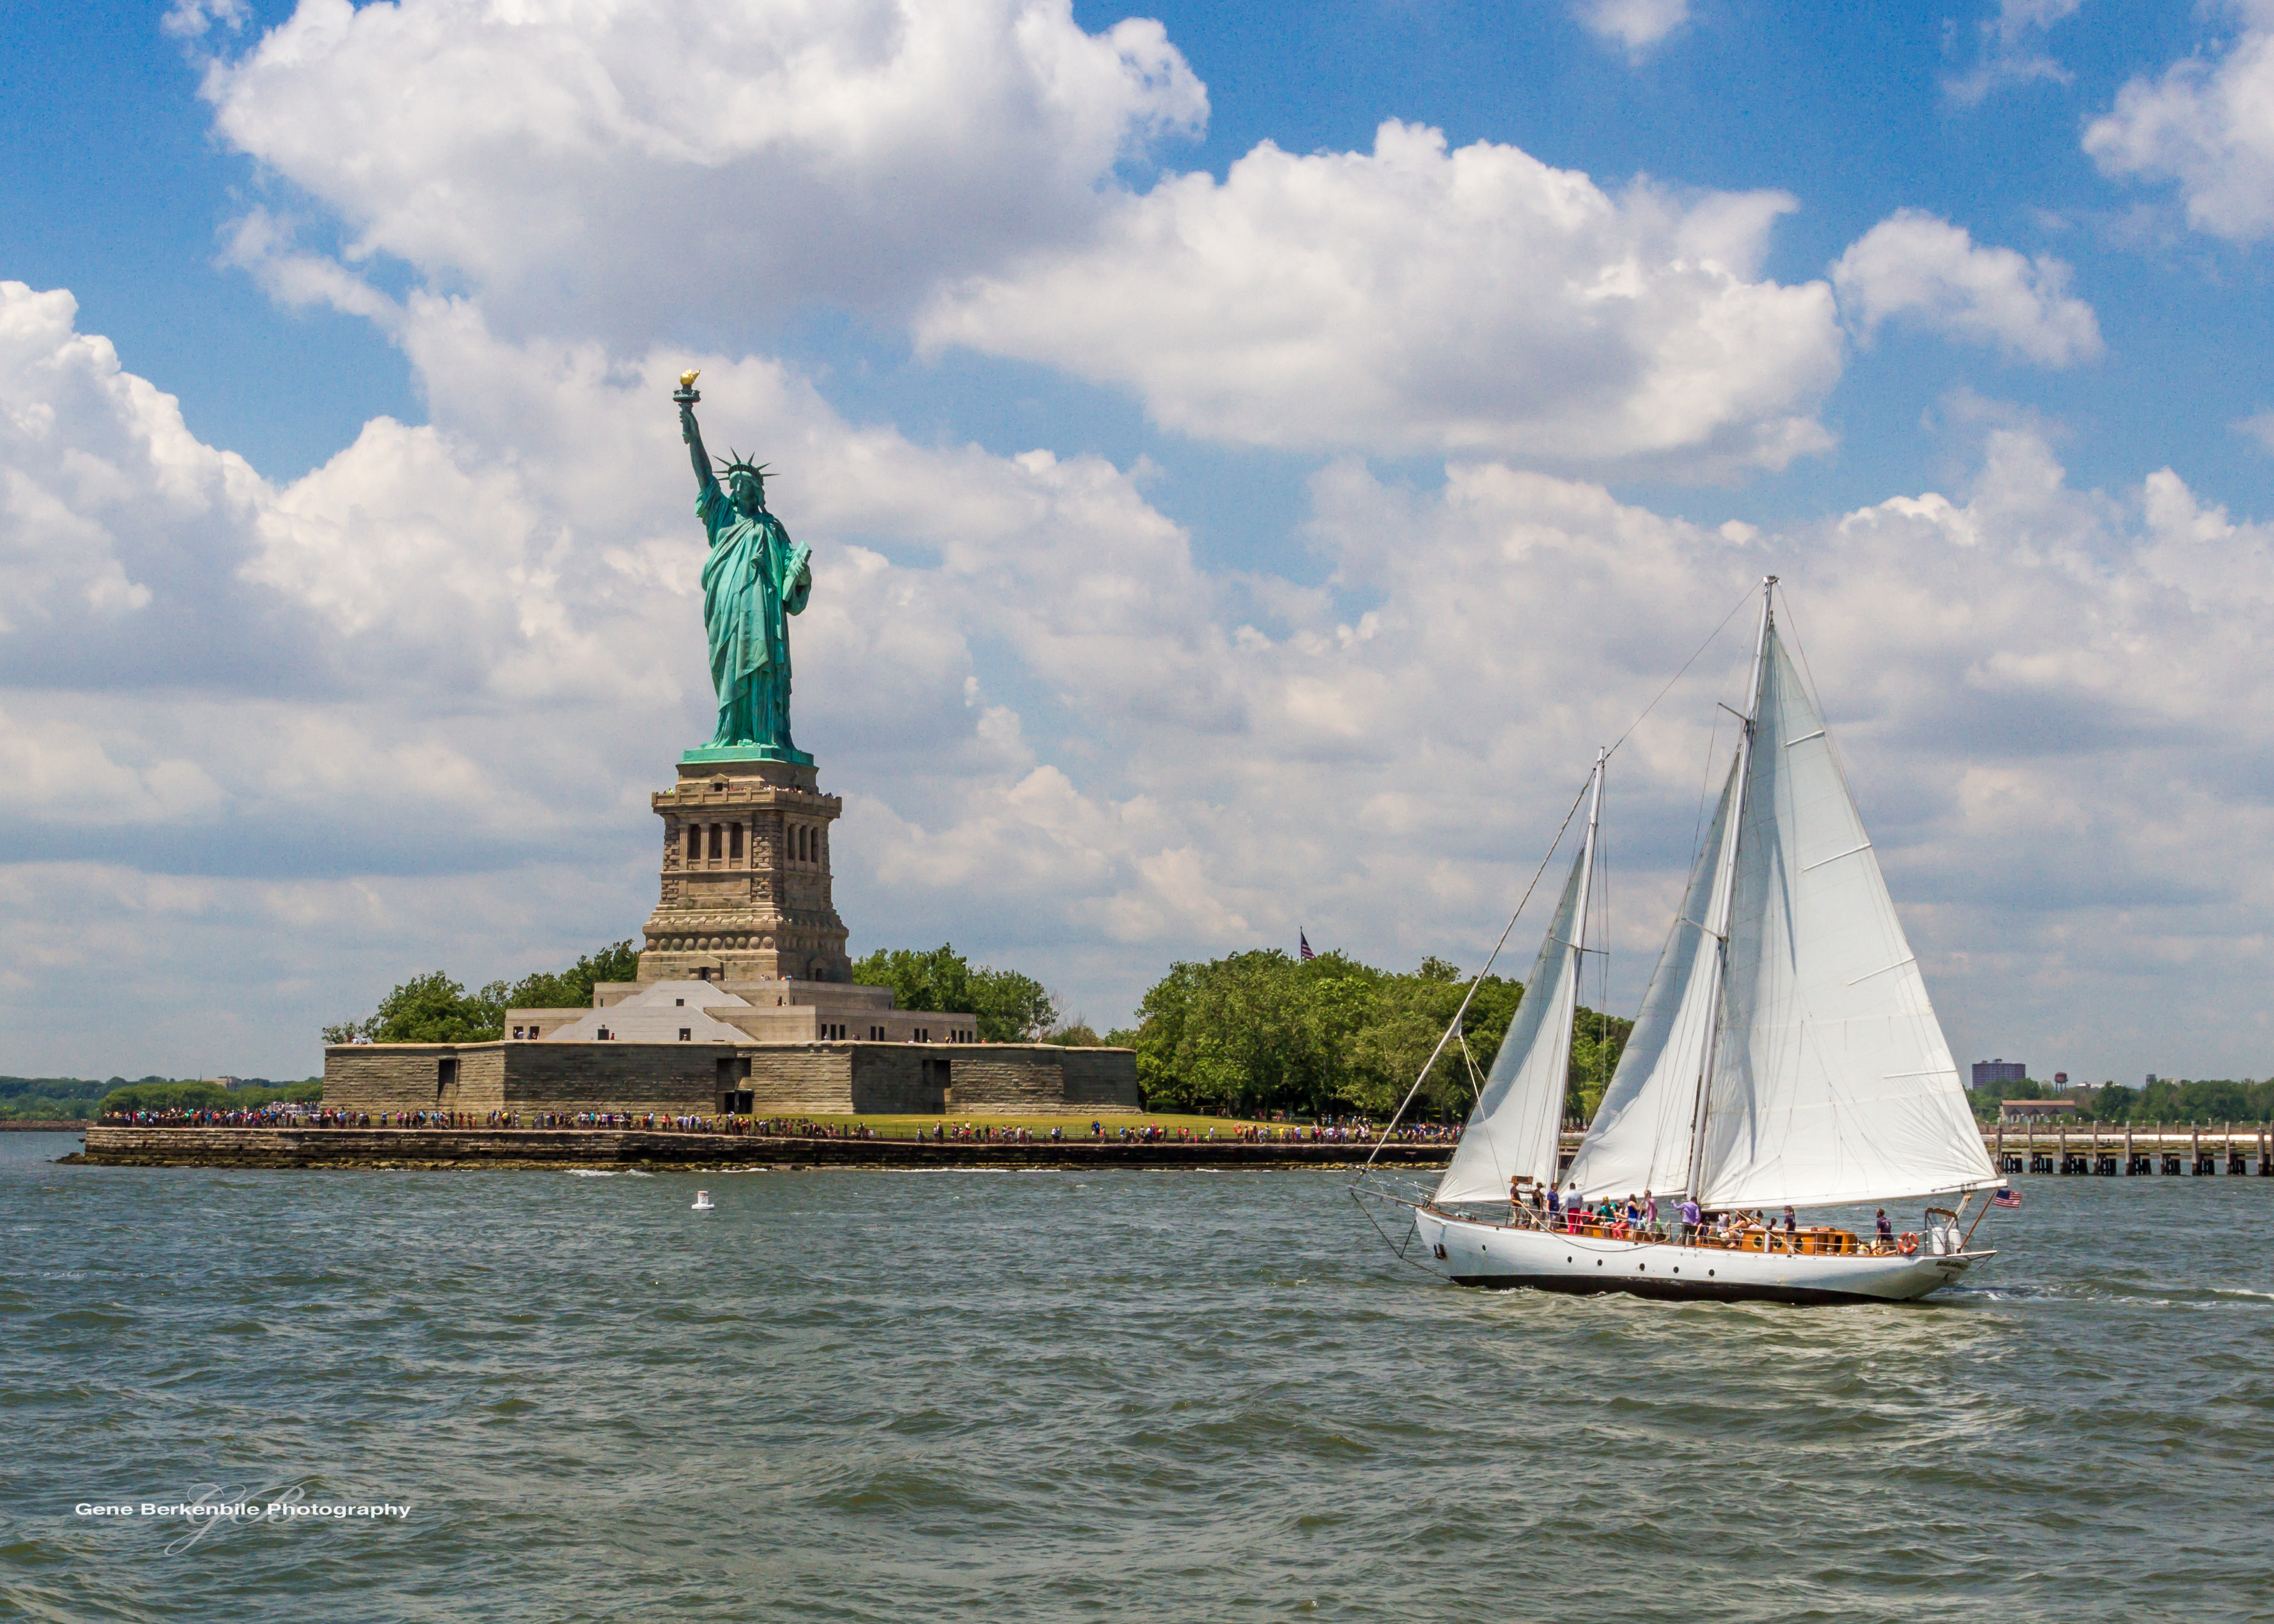 Statue of Liberty & The Sailboat